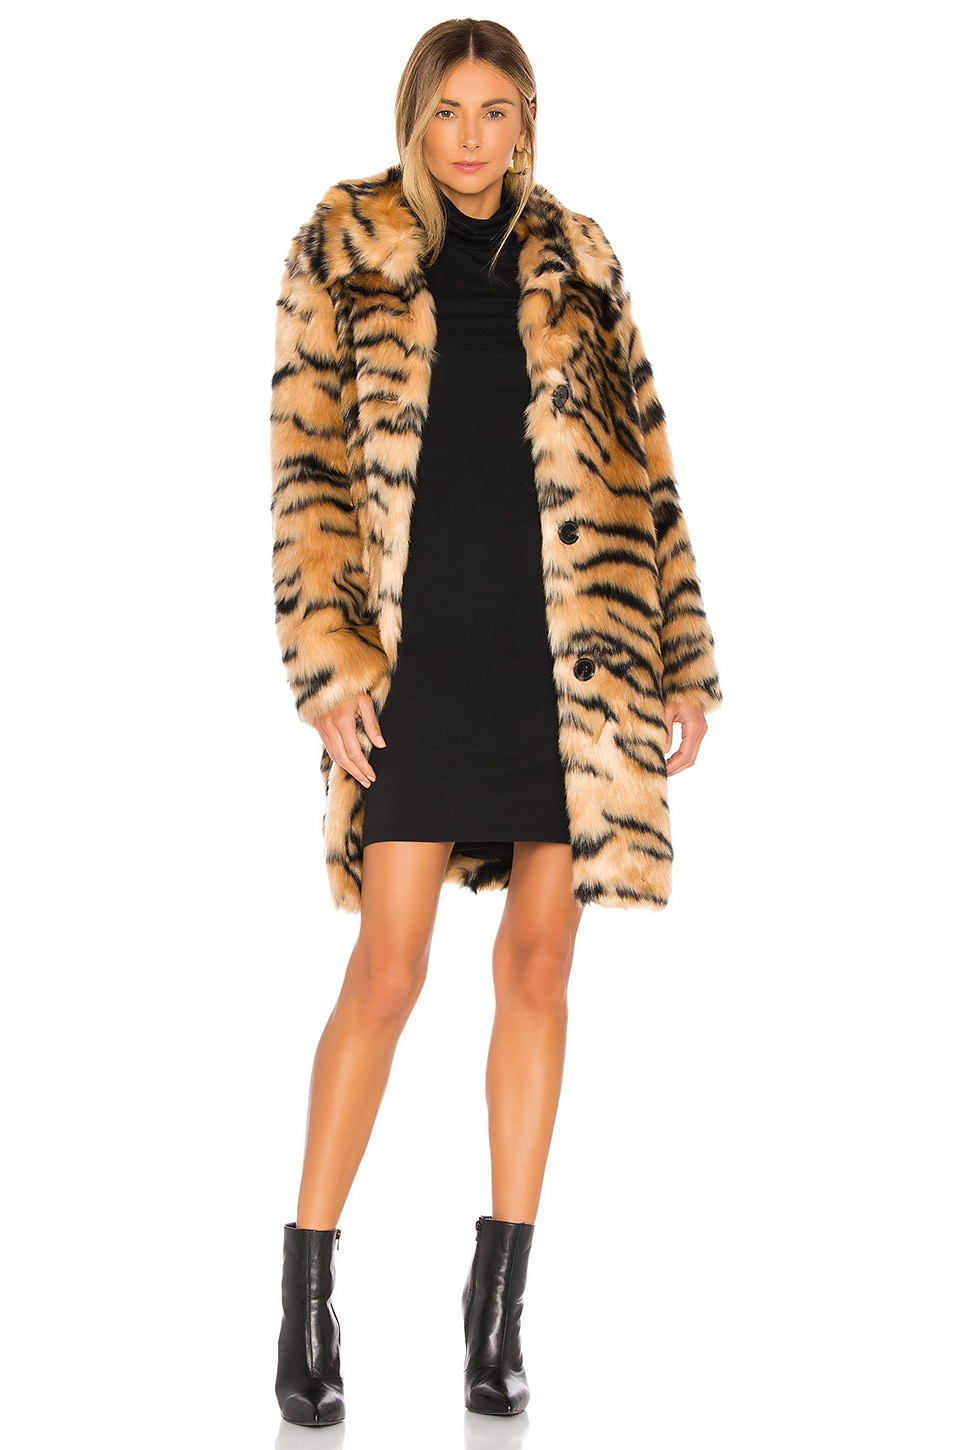 KENDALL + KYLIE Faux Fur Animal Print Coat in Tiger